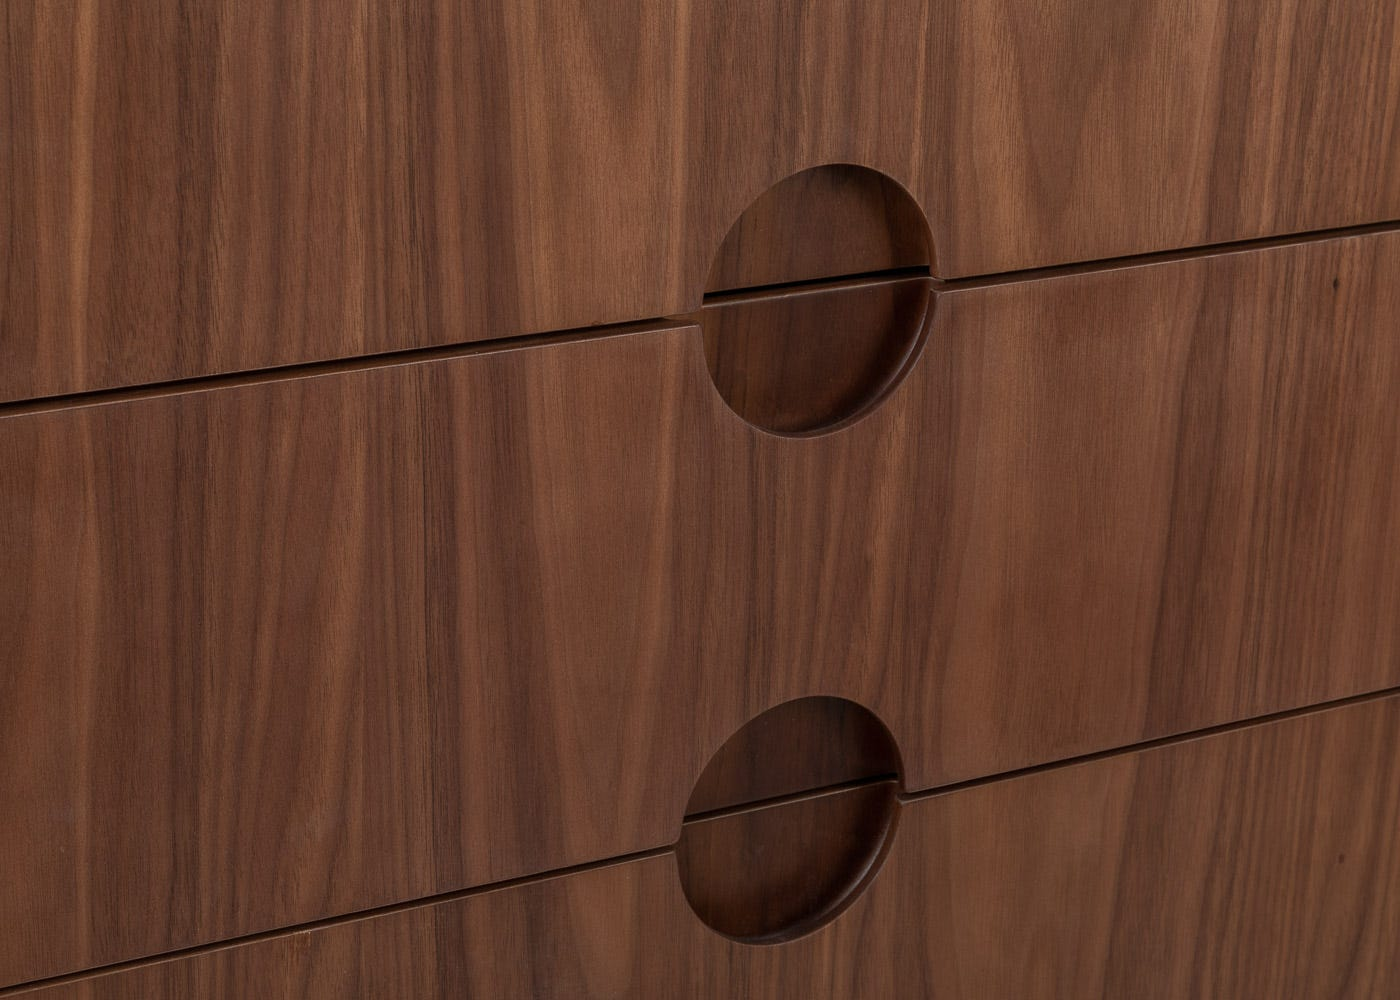 As shown: Routered handles